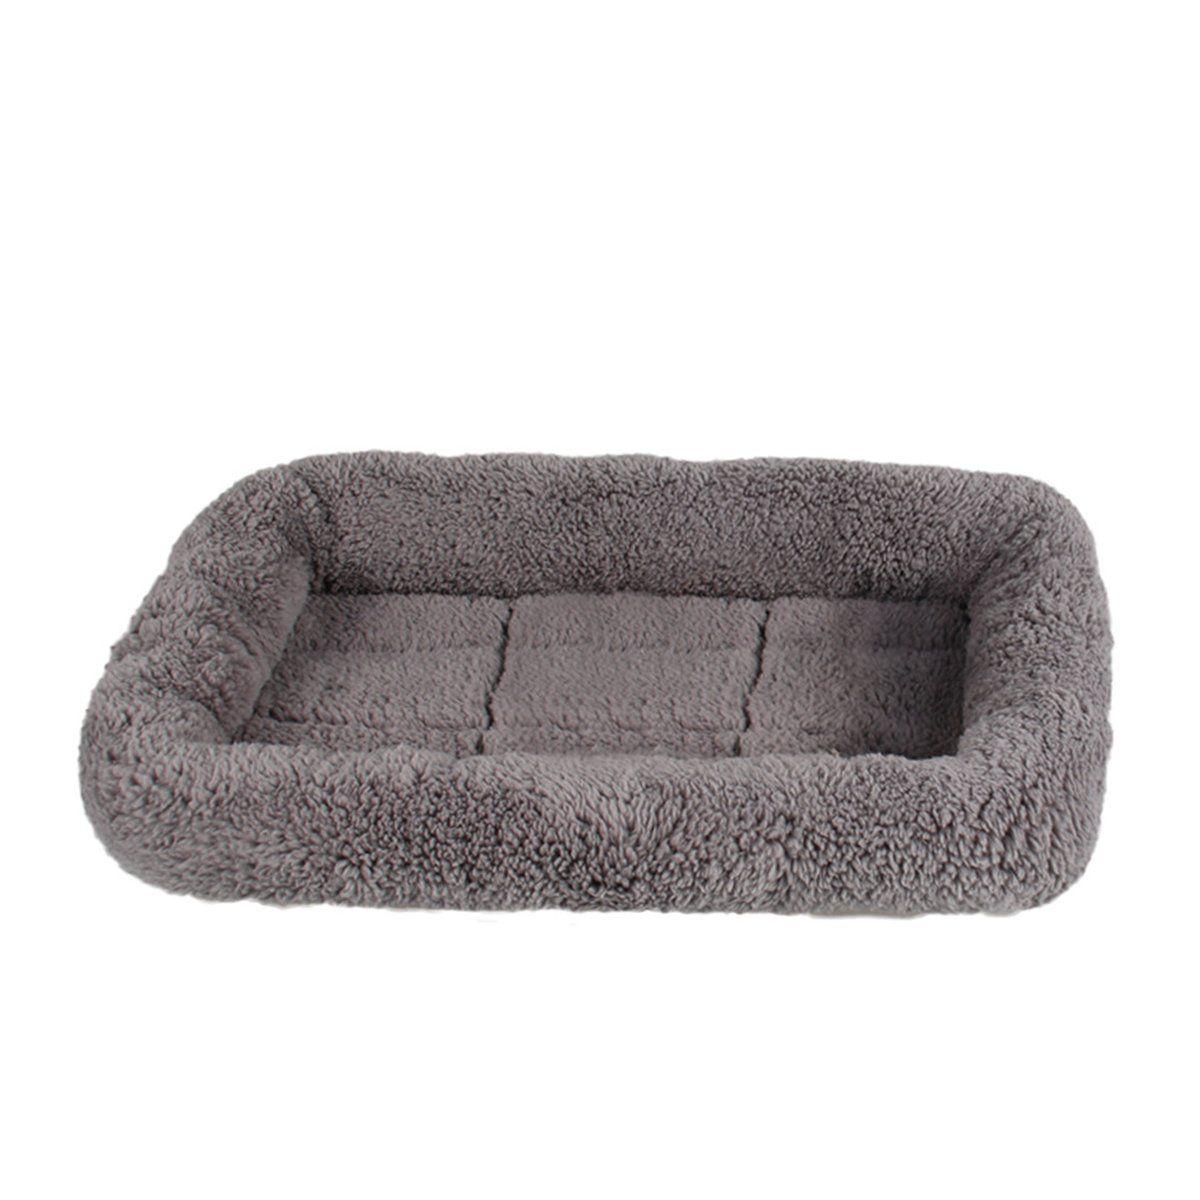 (42cm by 28cm ) LESYPET Small Dog Crate Cotton Washable Mat